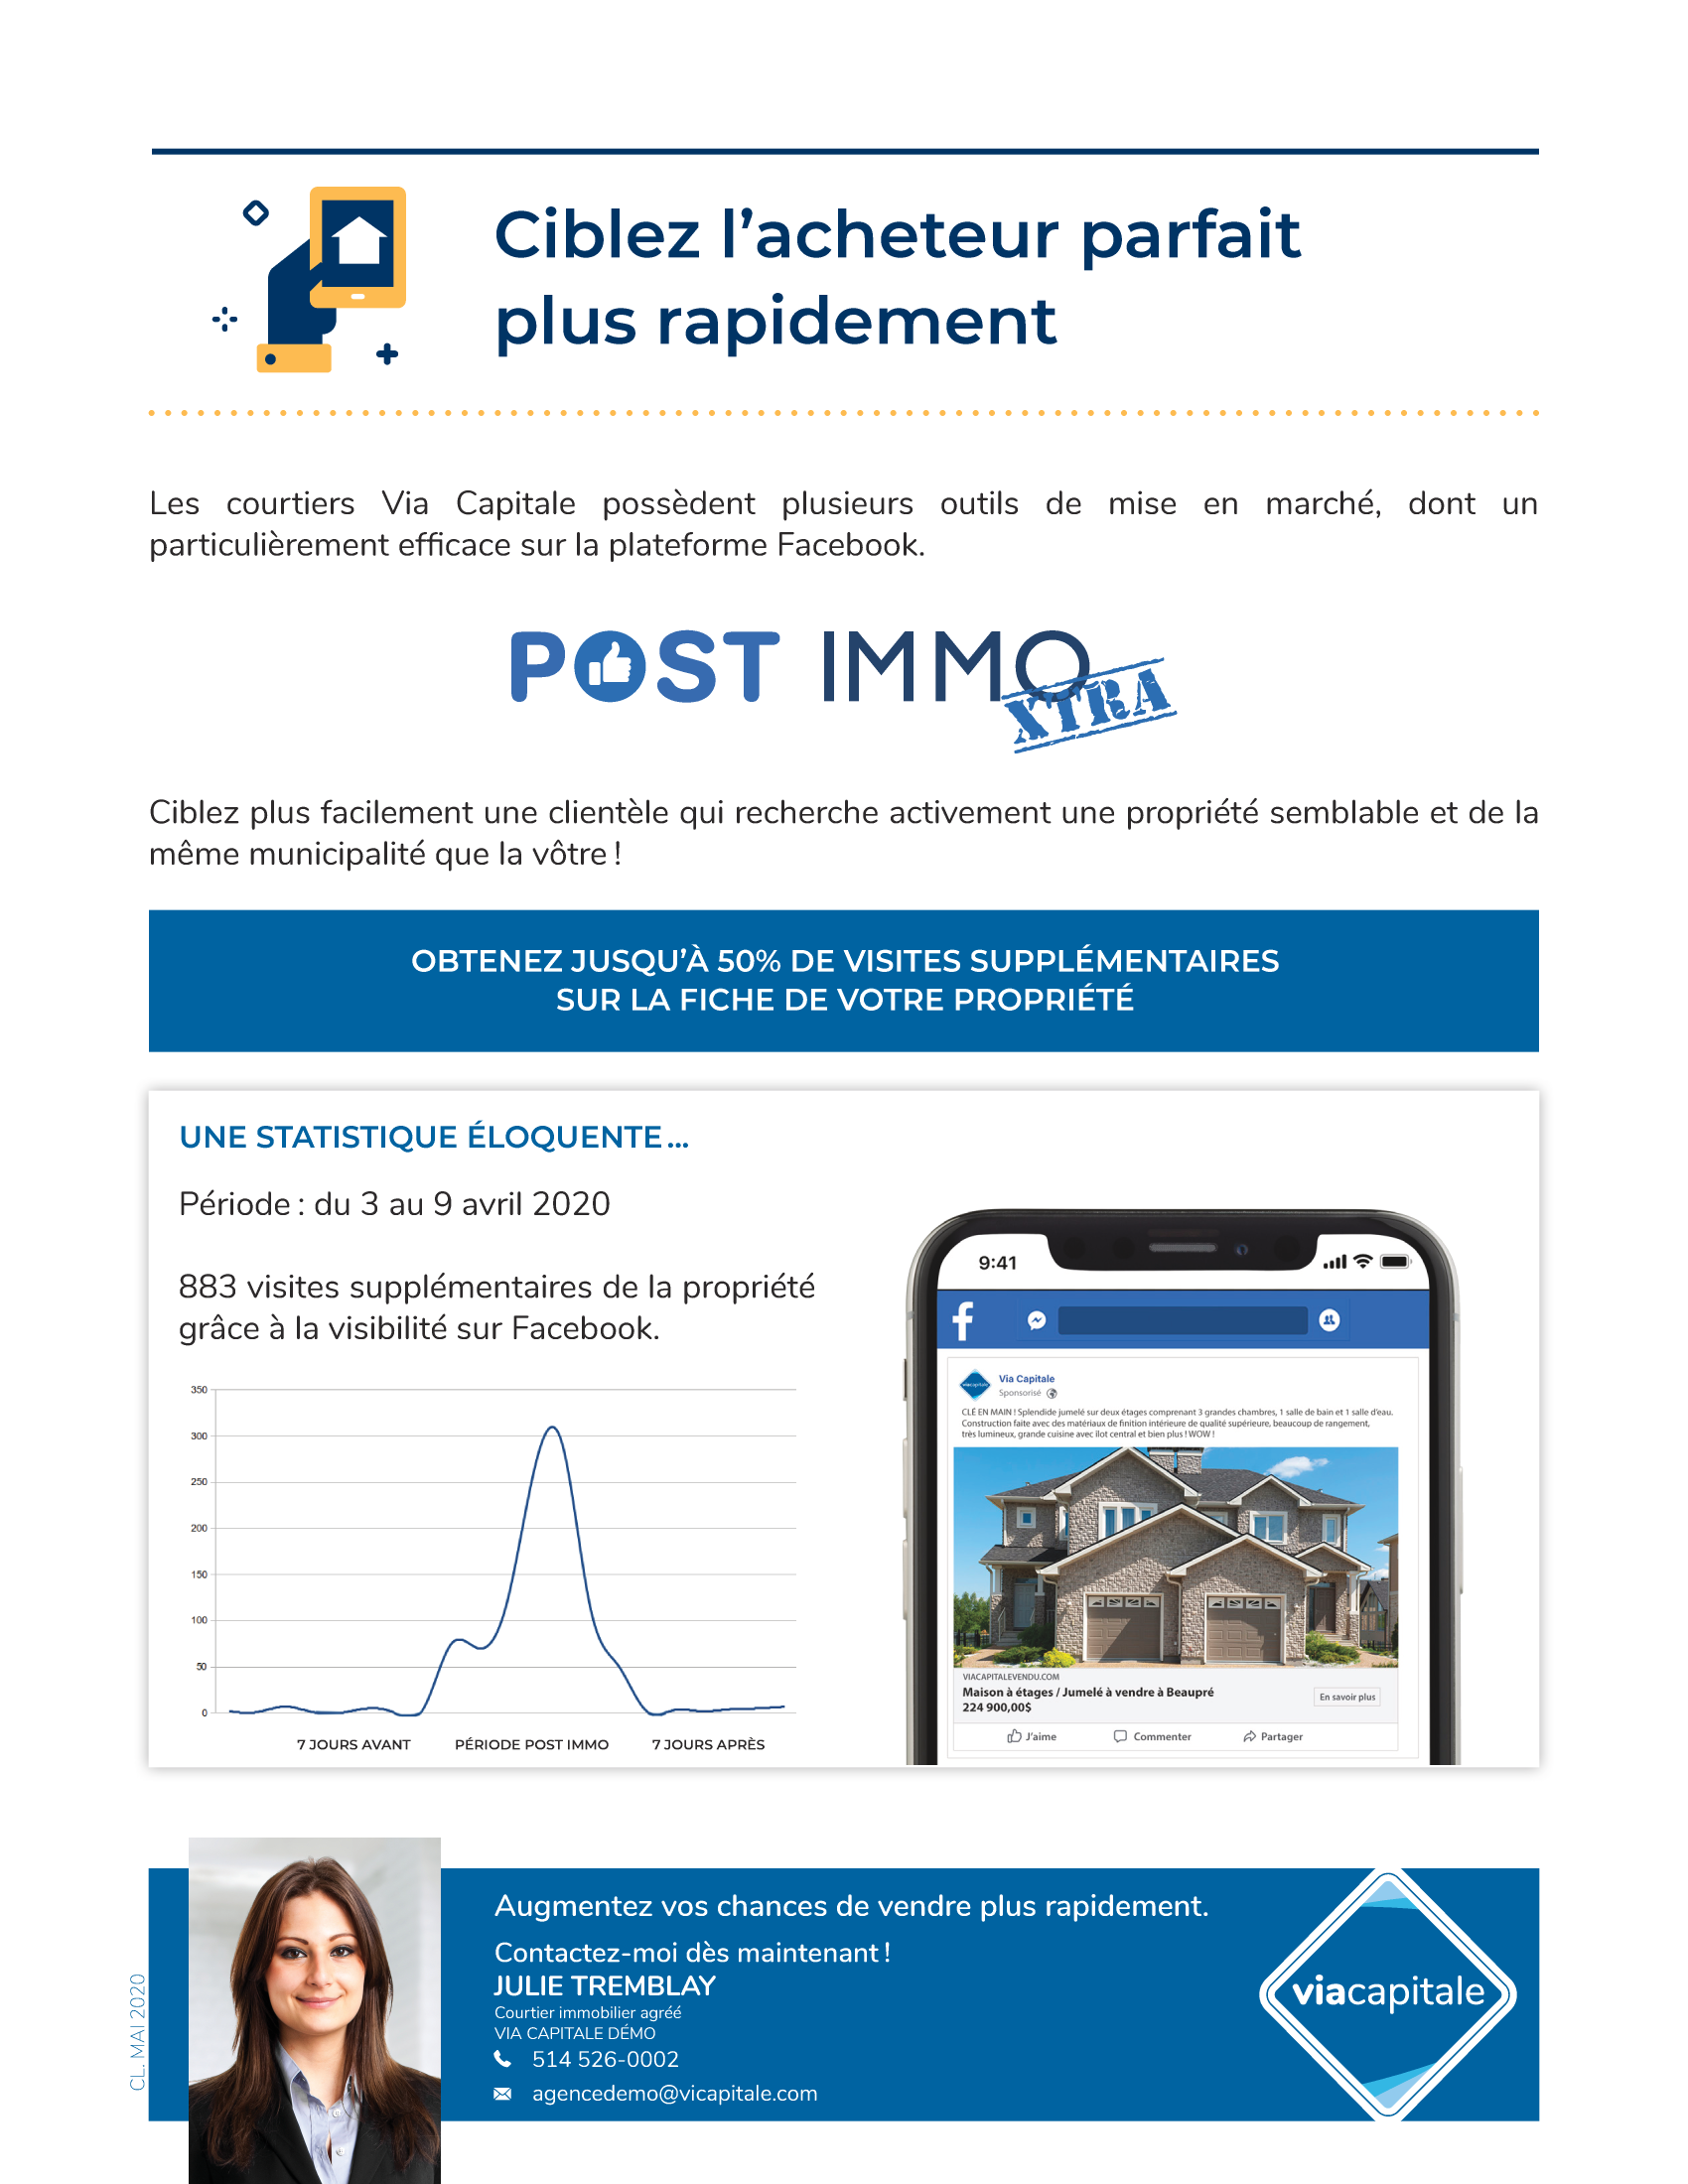 1 | Post Immo Extra Consommateur - AVEC photo